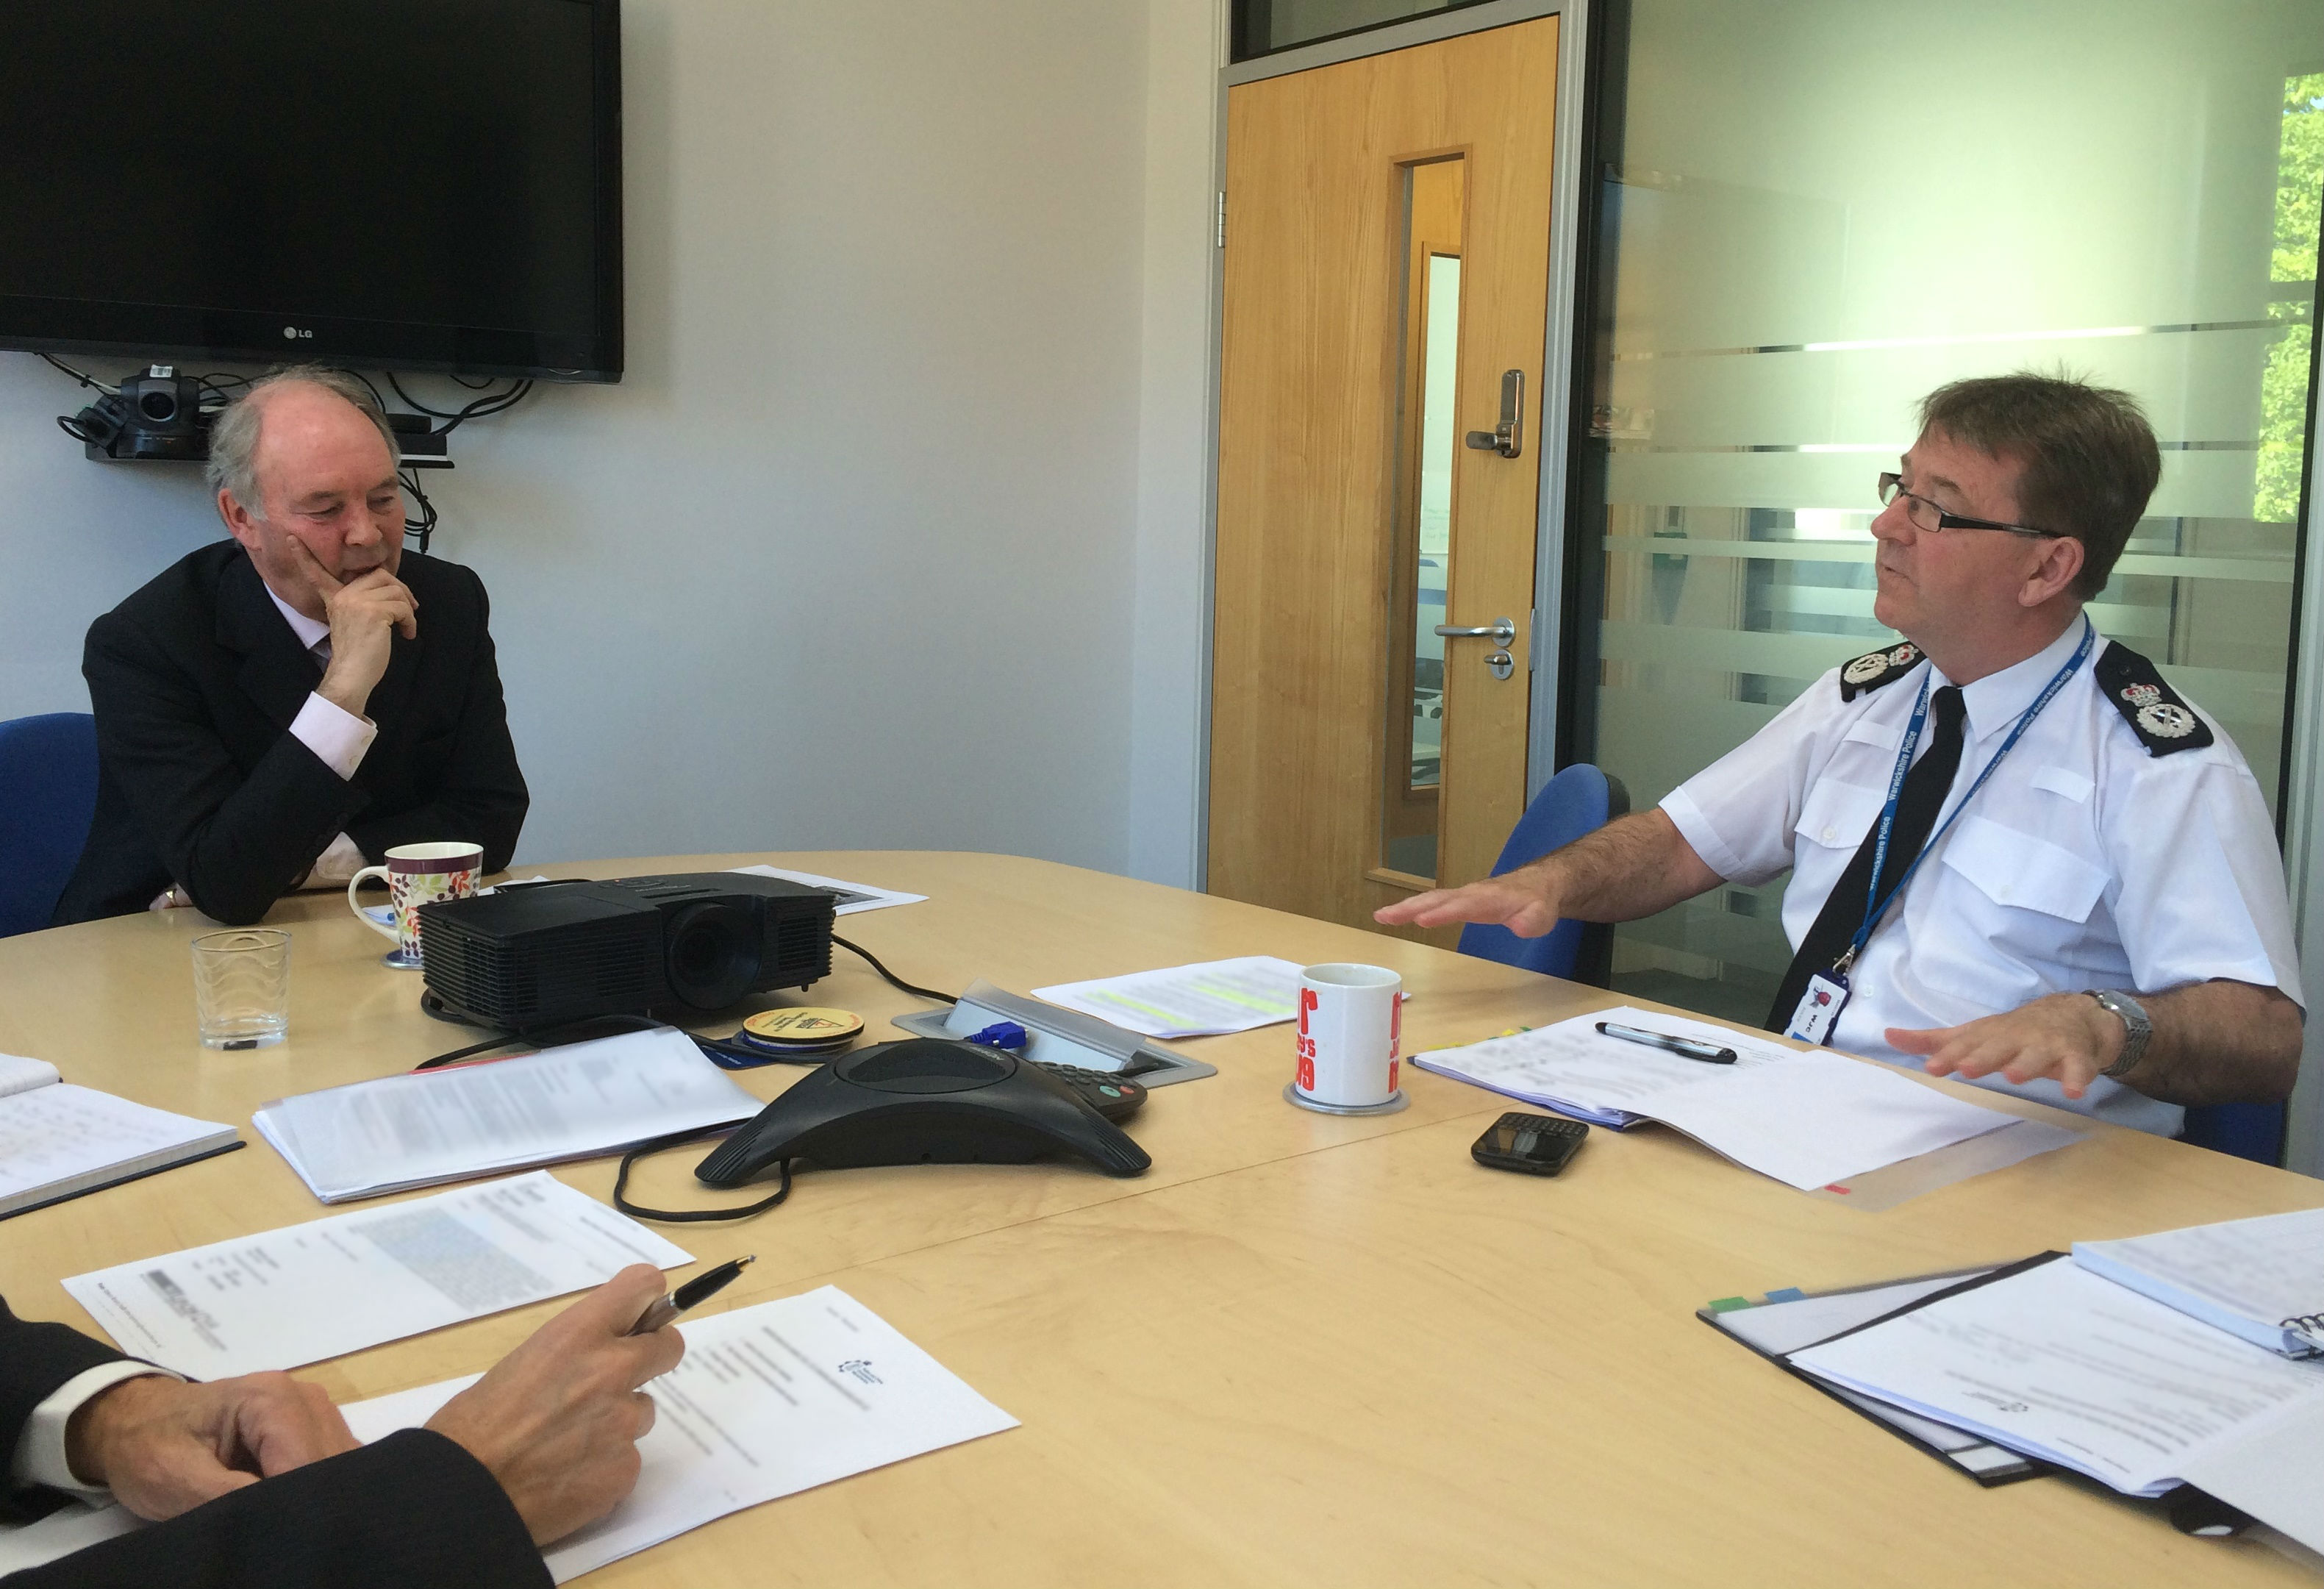 PCC and Chief Constable in discussion